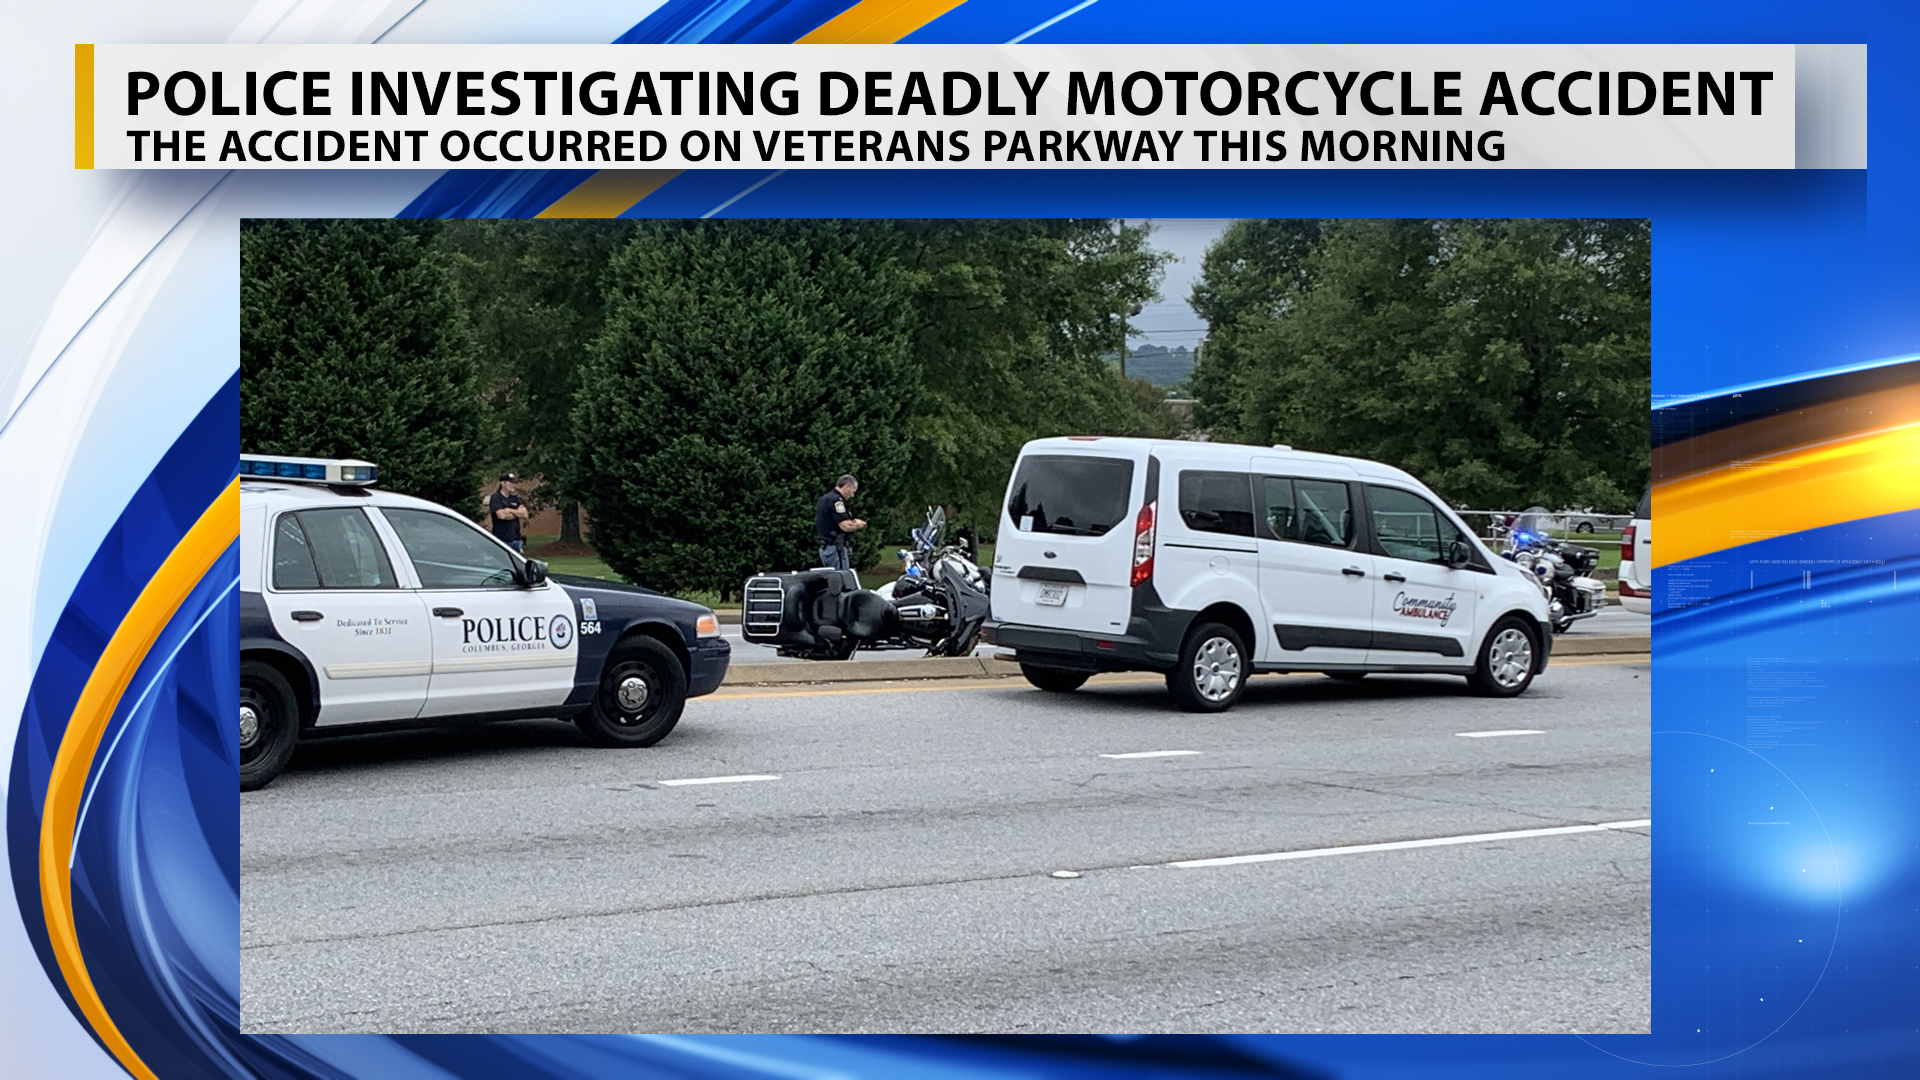 Motorcyle Accident Death on Veterans Parkway 6-12-2019_1560354967984.jpg.jpg